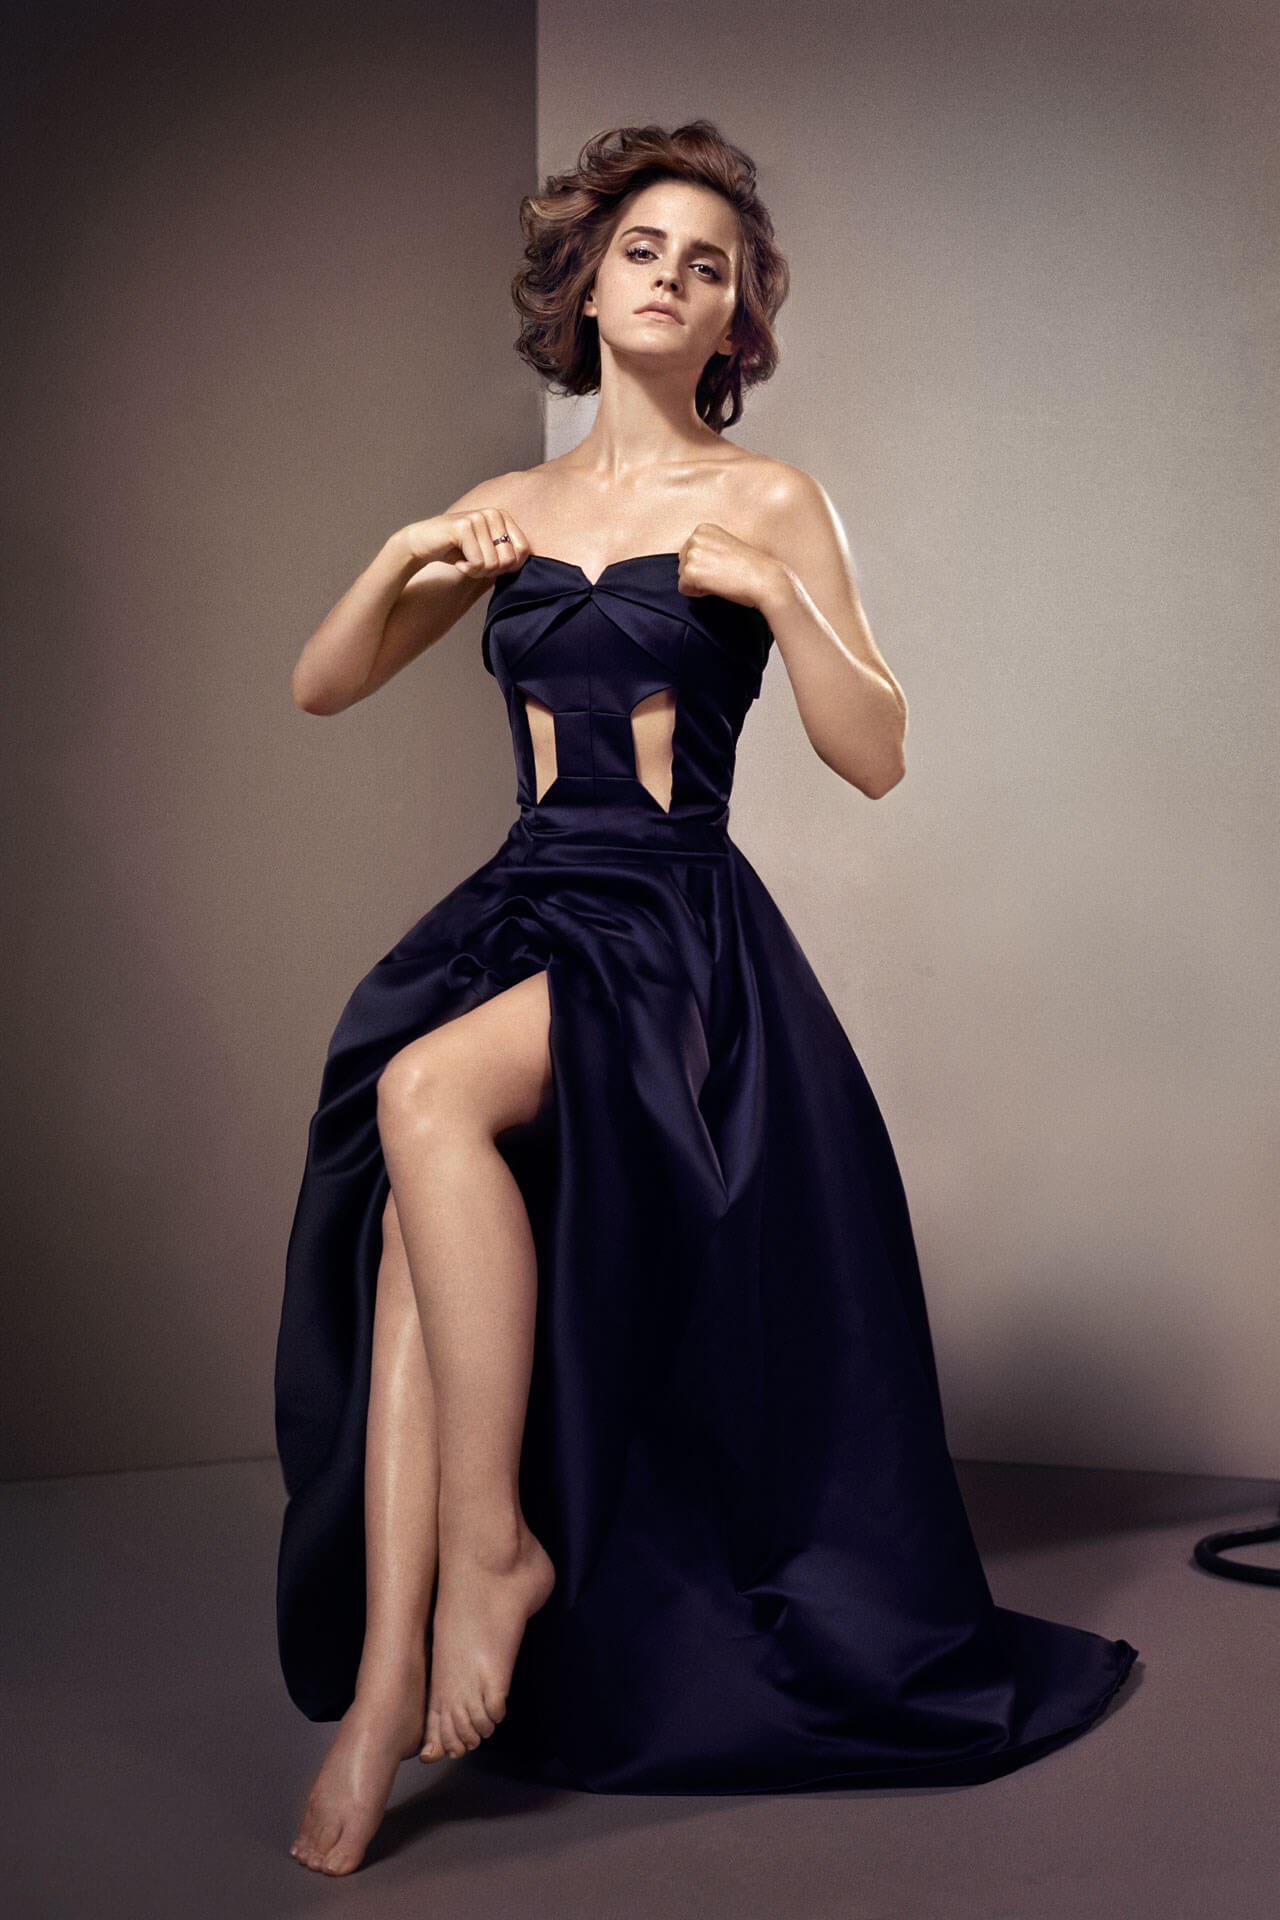 49 sexy photos of Emma Watson Boobs that are amazingly amazing